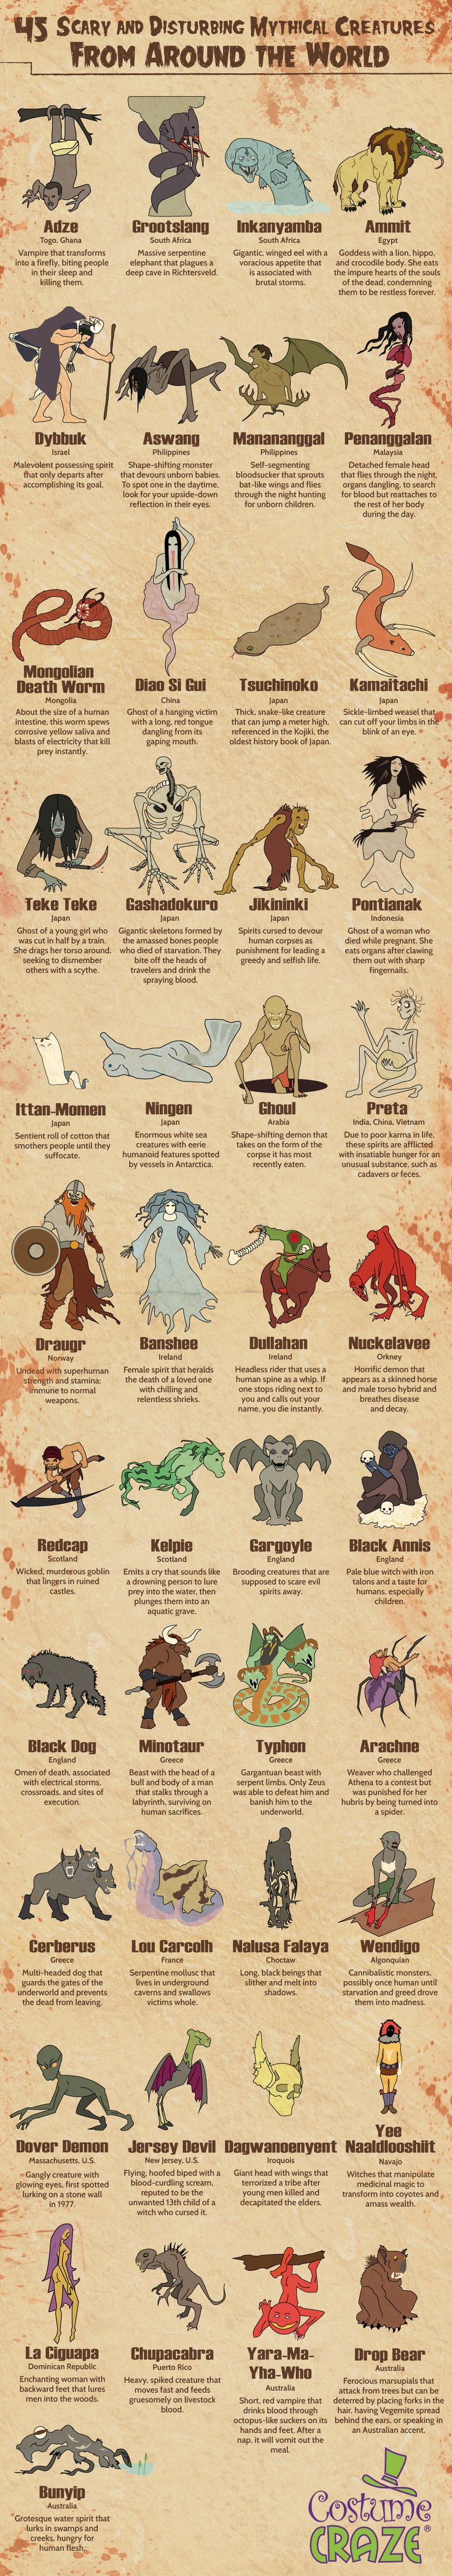 Here Are 45 Awesome Mythology Creatures That Will Scare Your Pants Off! — GeekTyrant